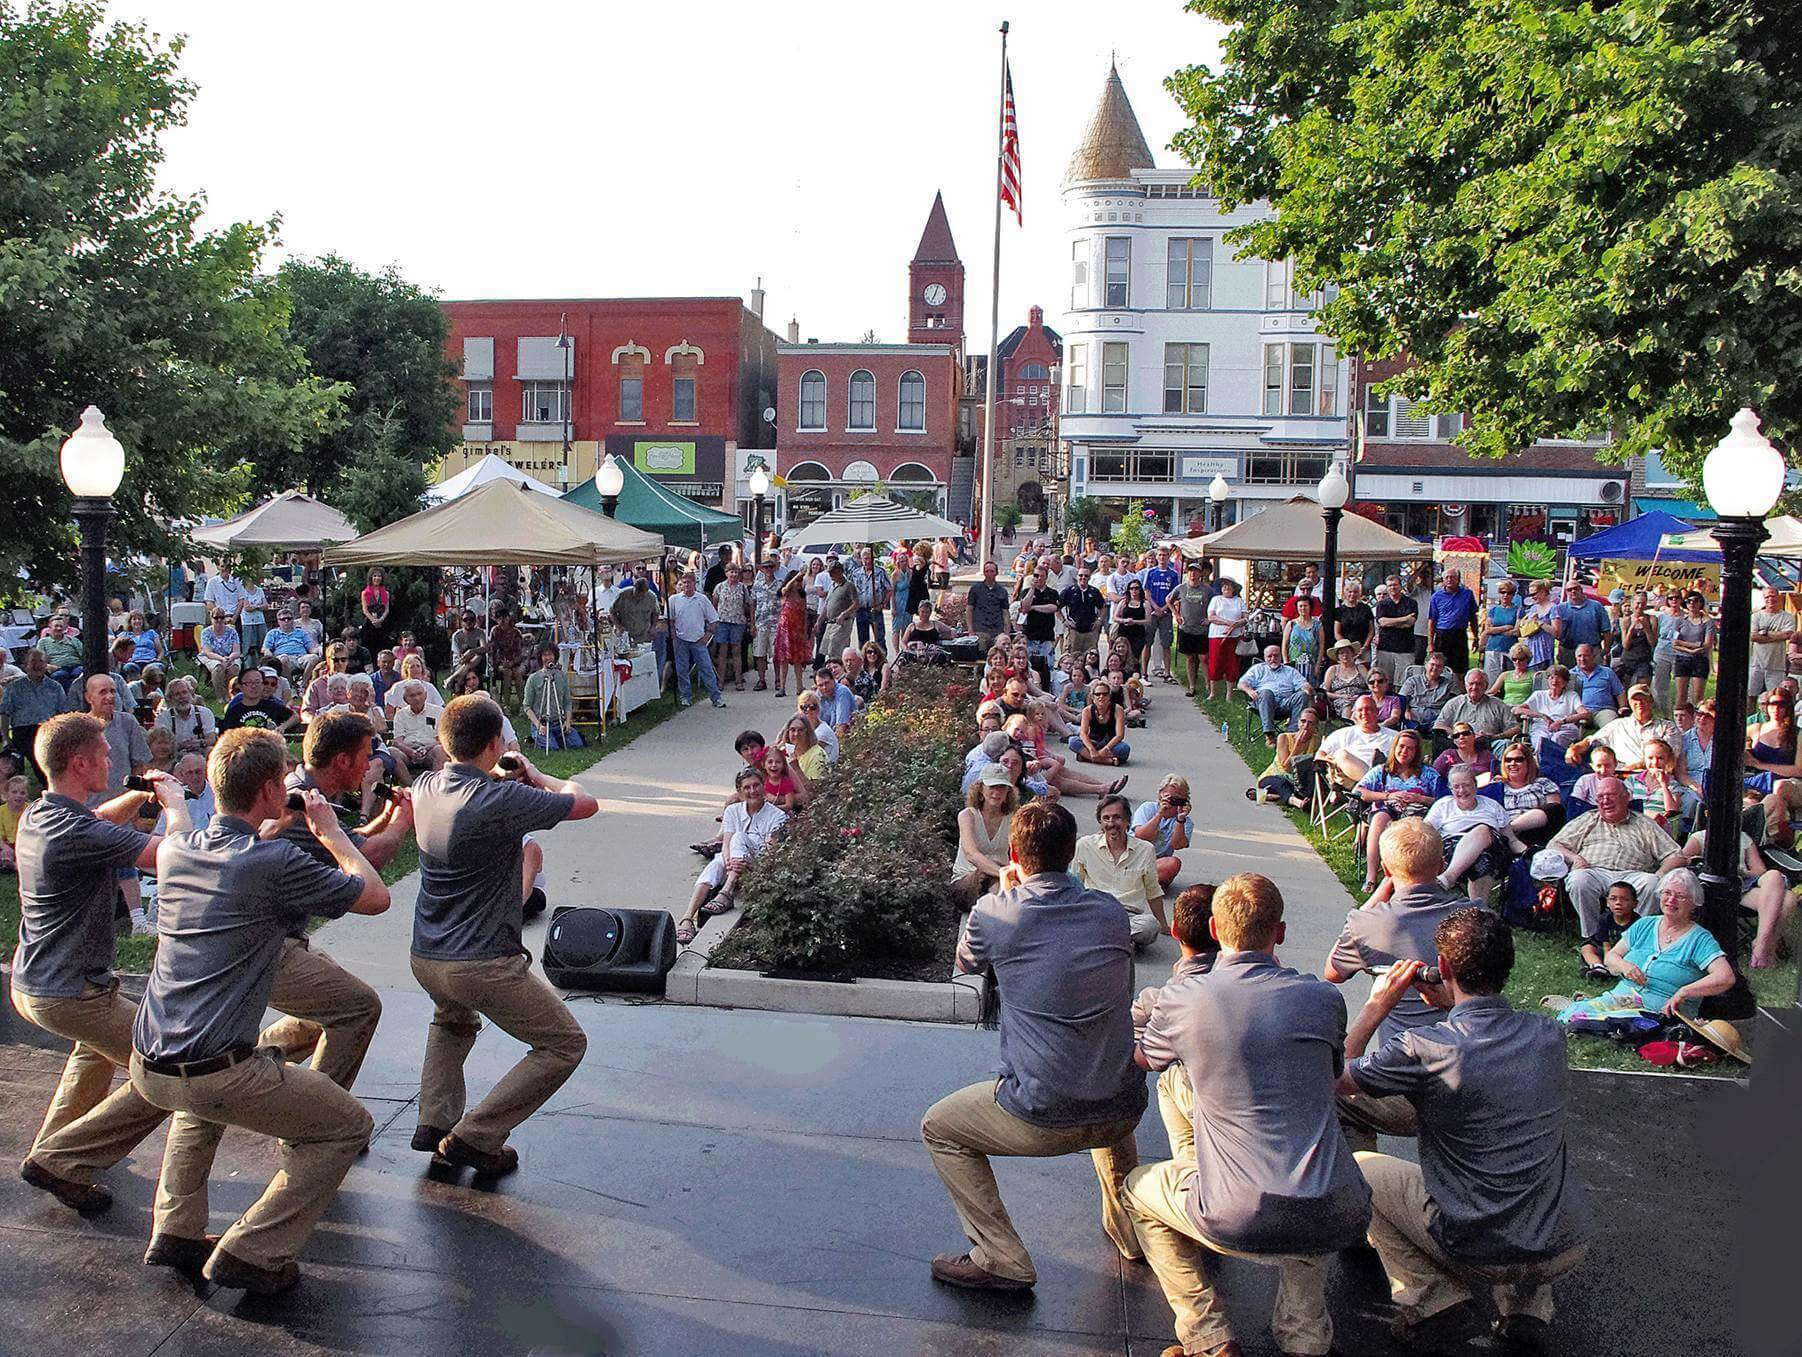 Activities in the downtown square